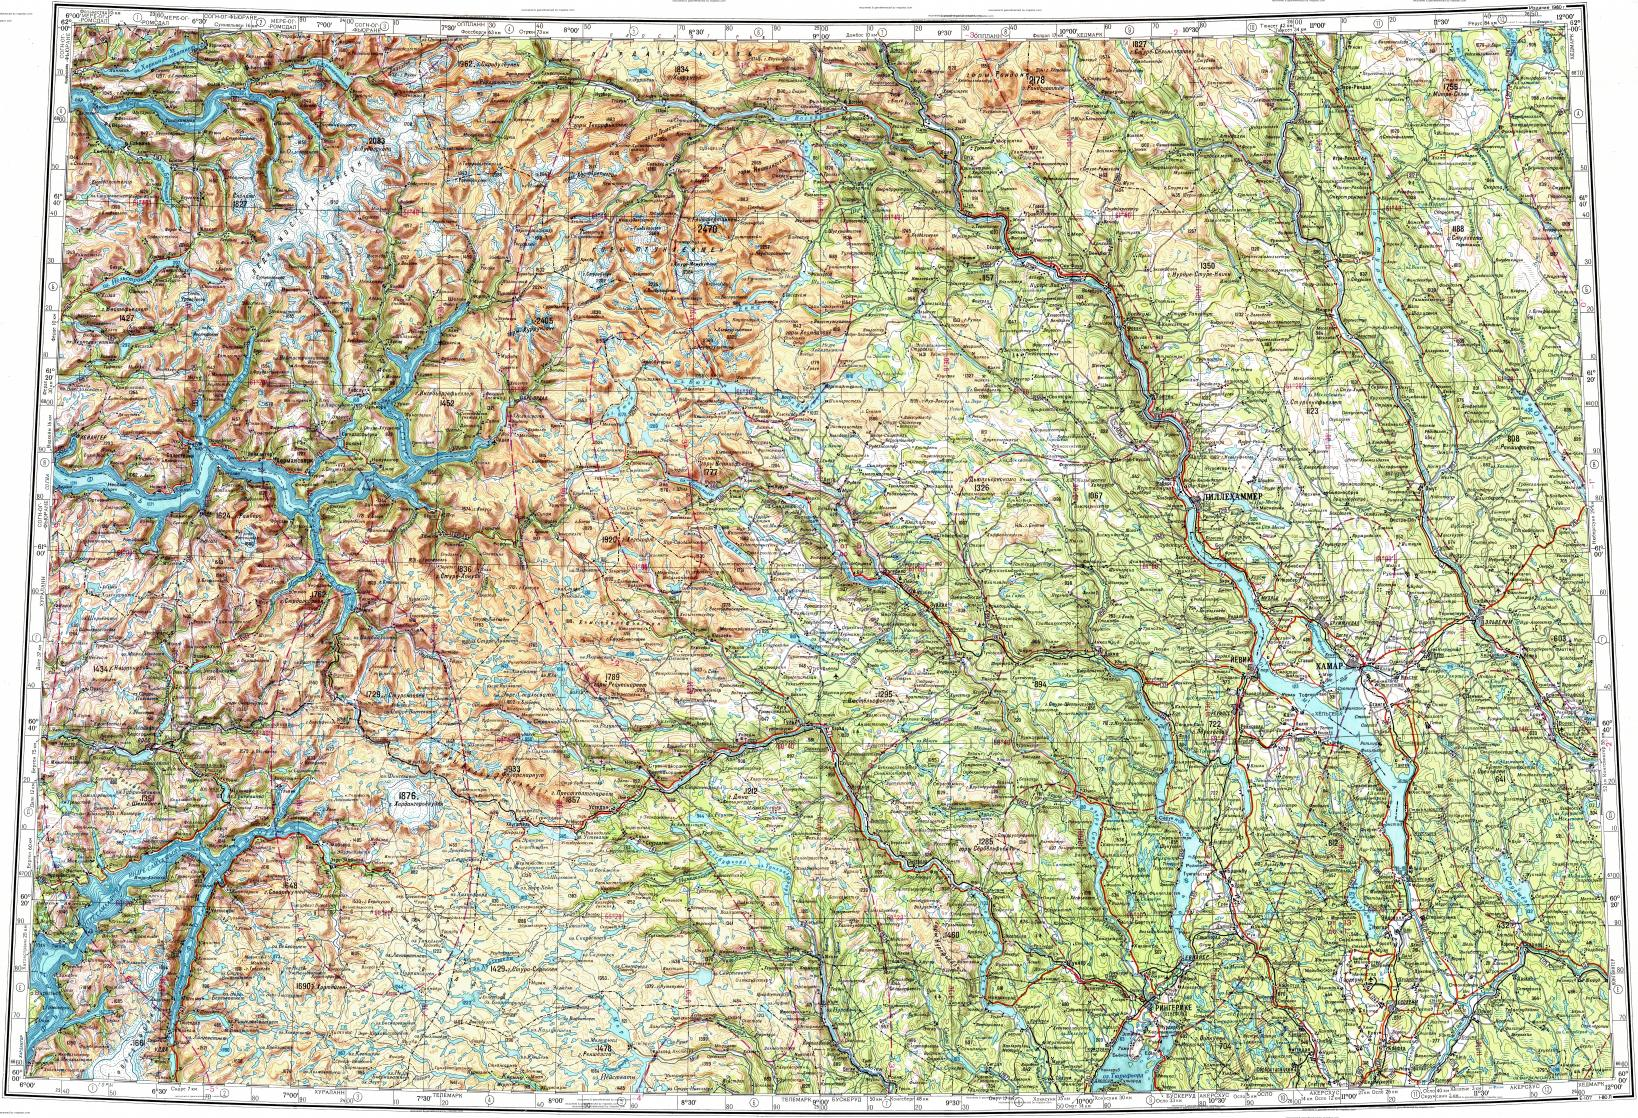 Download topographic map in area of Hamar Gjovik Lillehammer